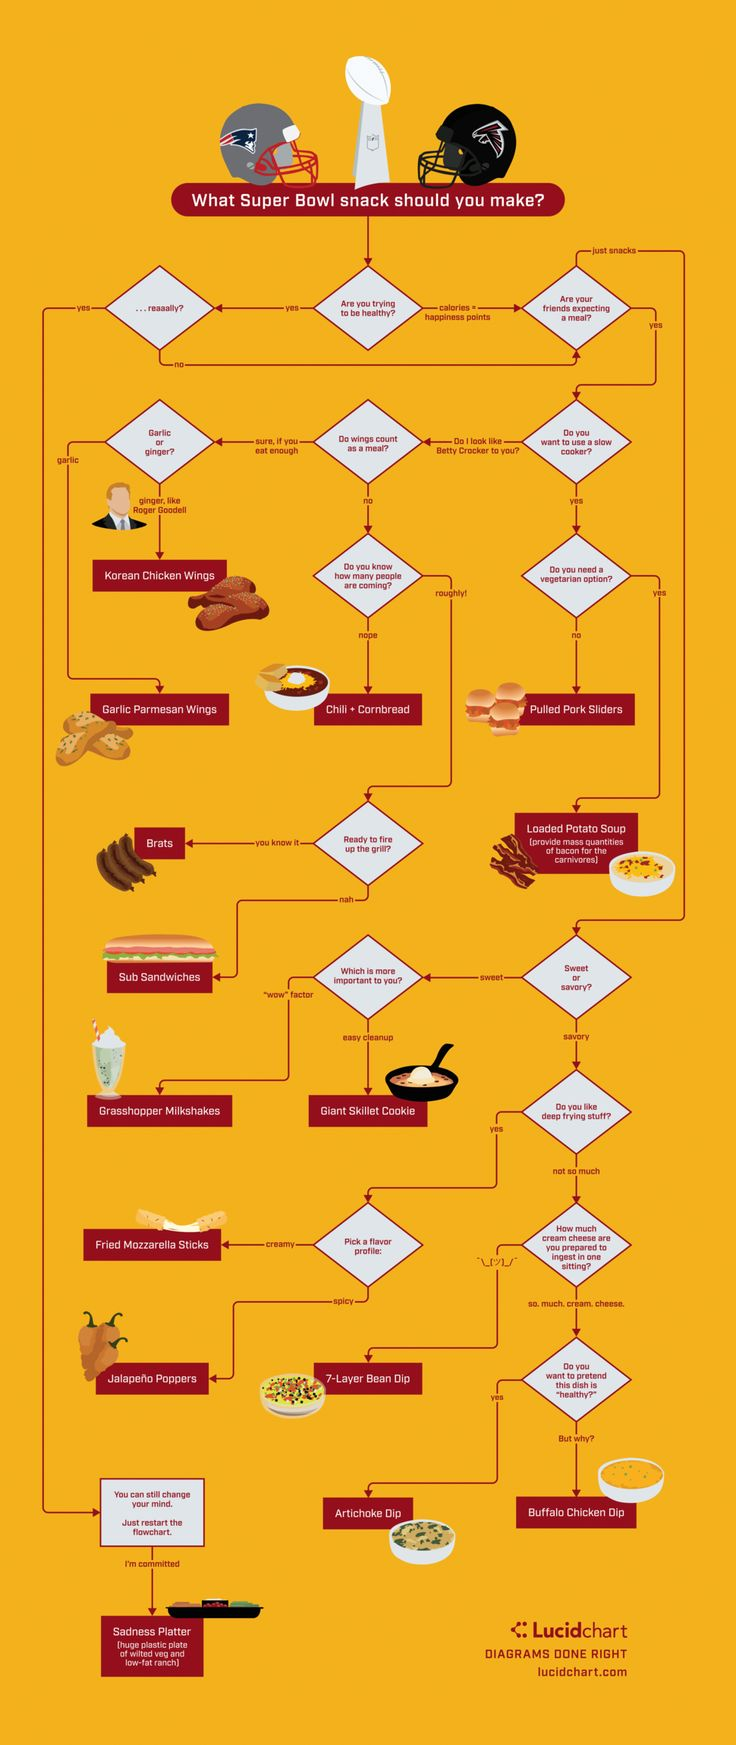 80 best fantastic flowcharts and diagrams images on pinterest take all the stress out of game day an awesome flowchart on the huffington post nvjuhfo Images